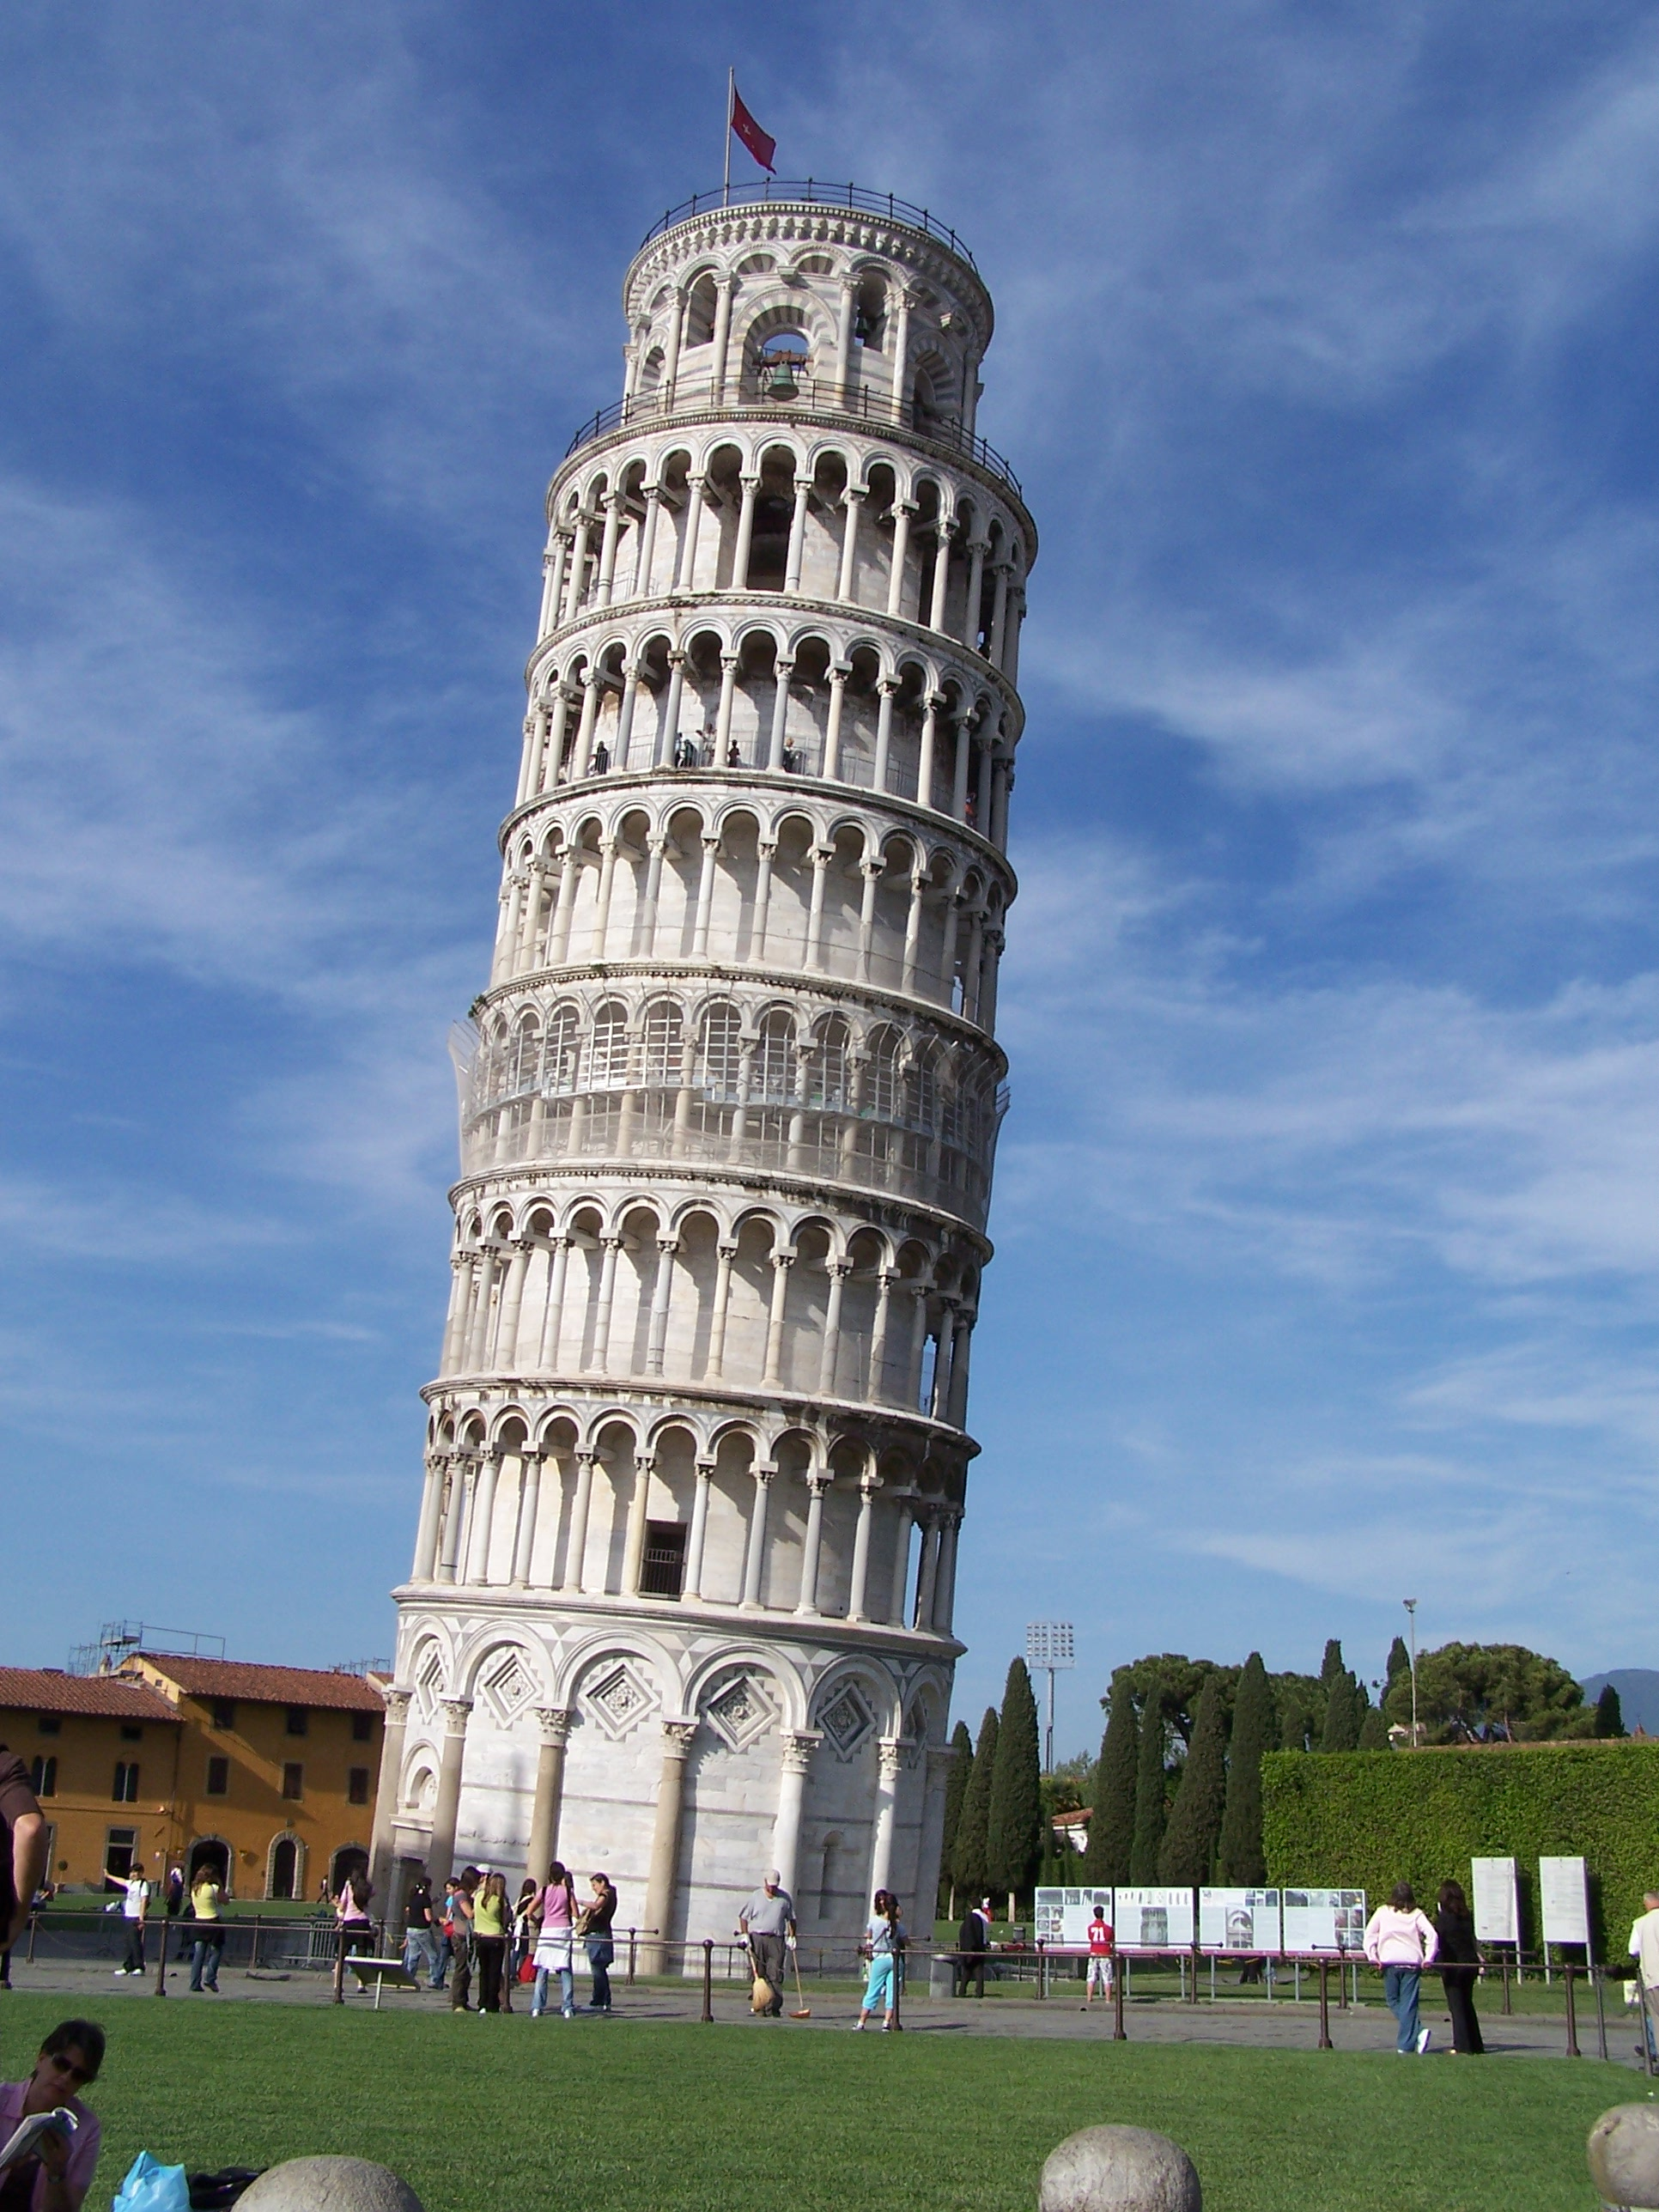 Leaning tower of pisa pics4learning - Leaning tower of pisa ...